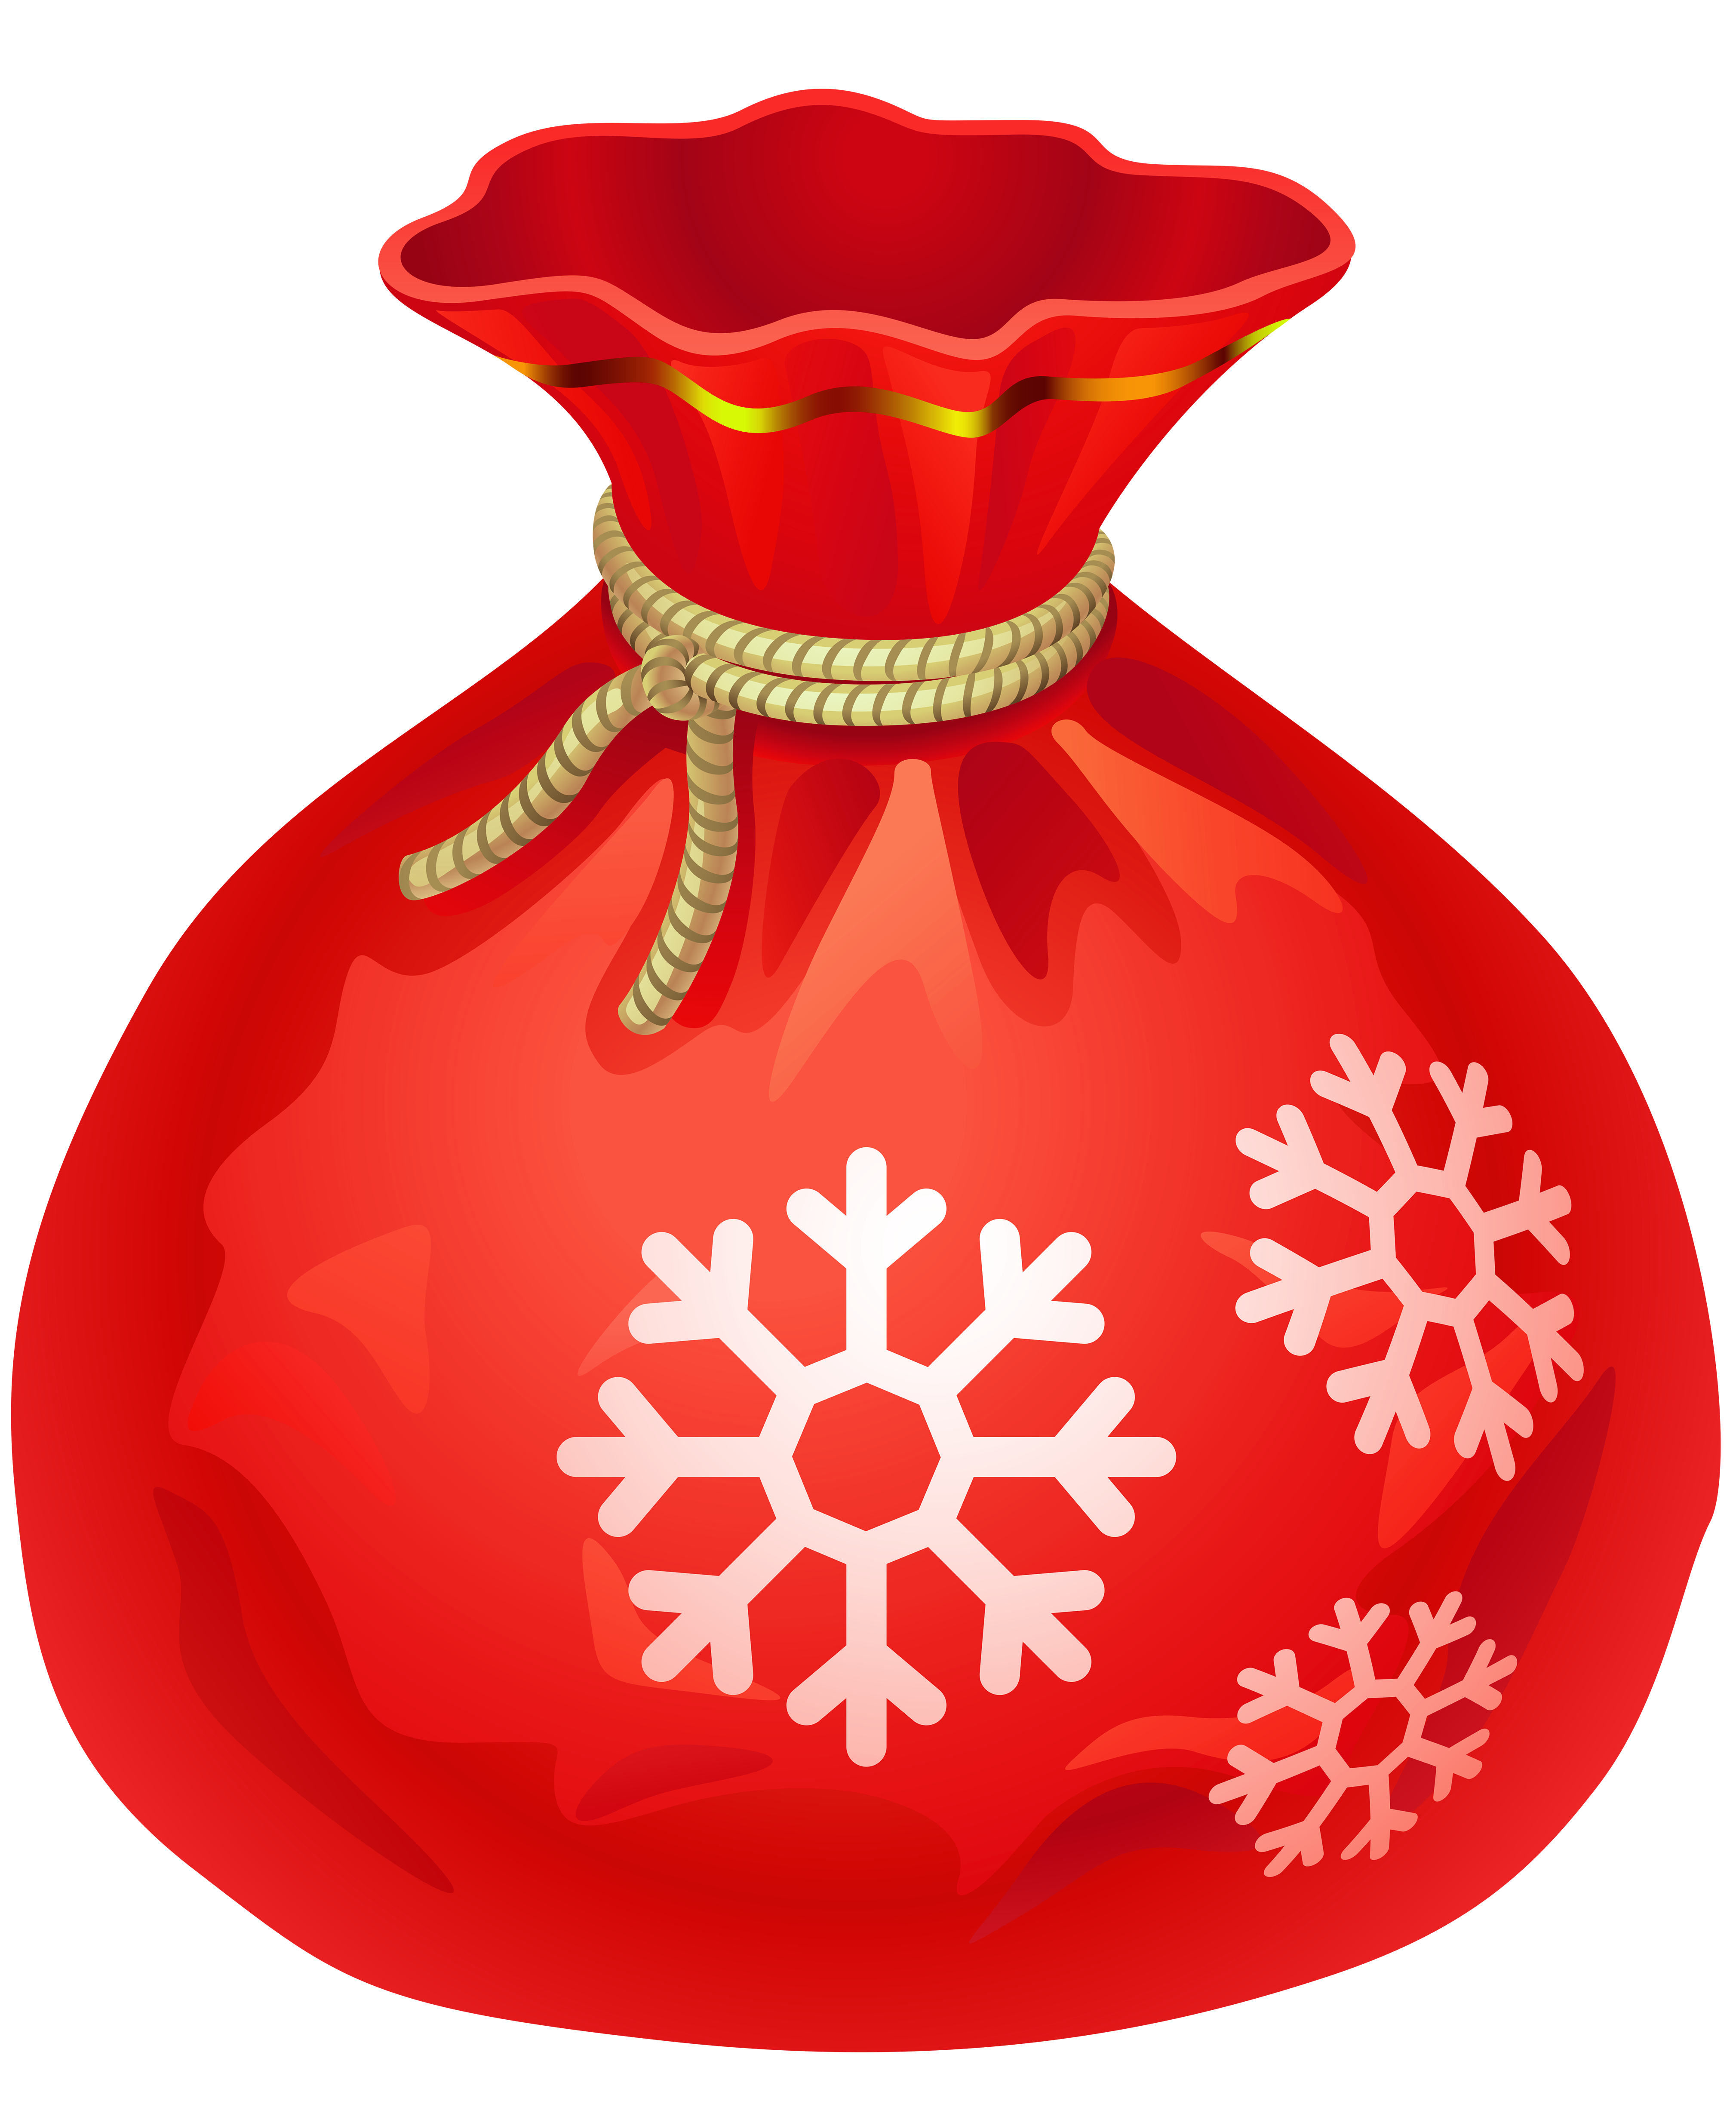 Transparent Christmas Red Santa Bag PNG Clipart | Gallery ...